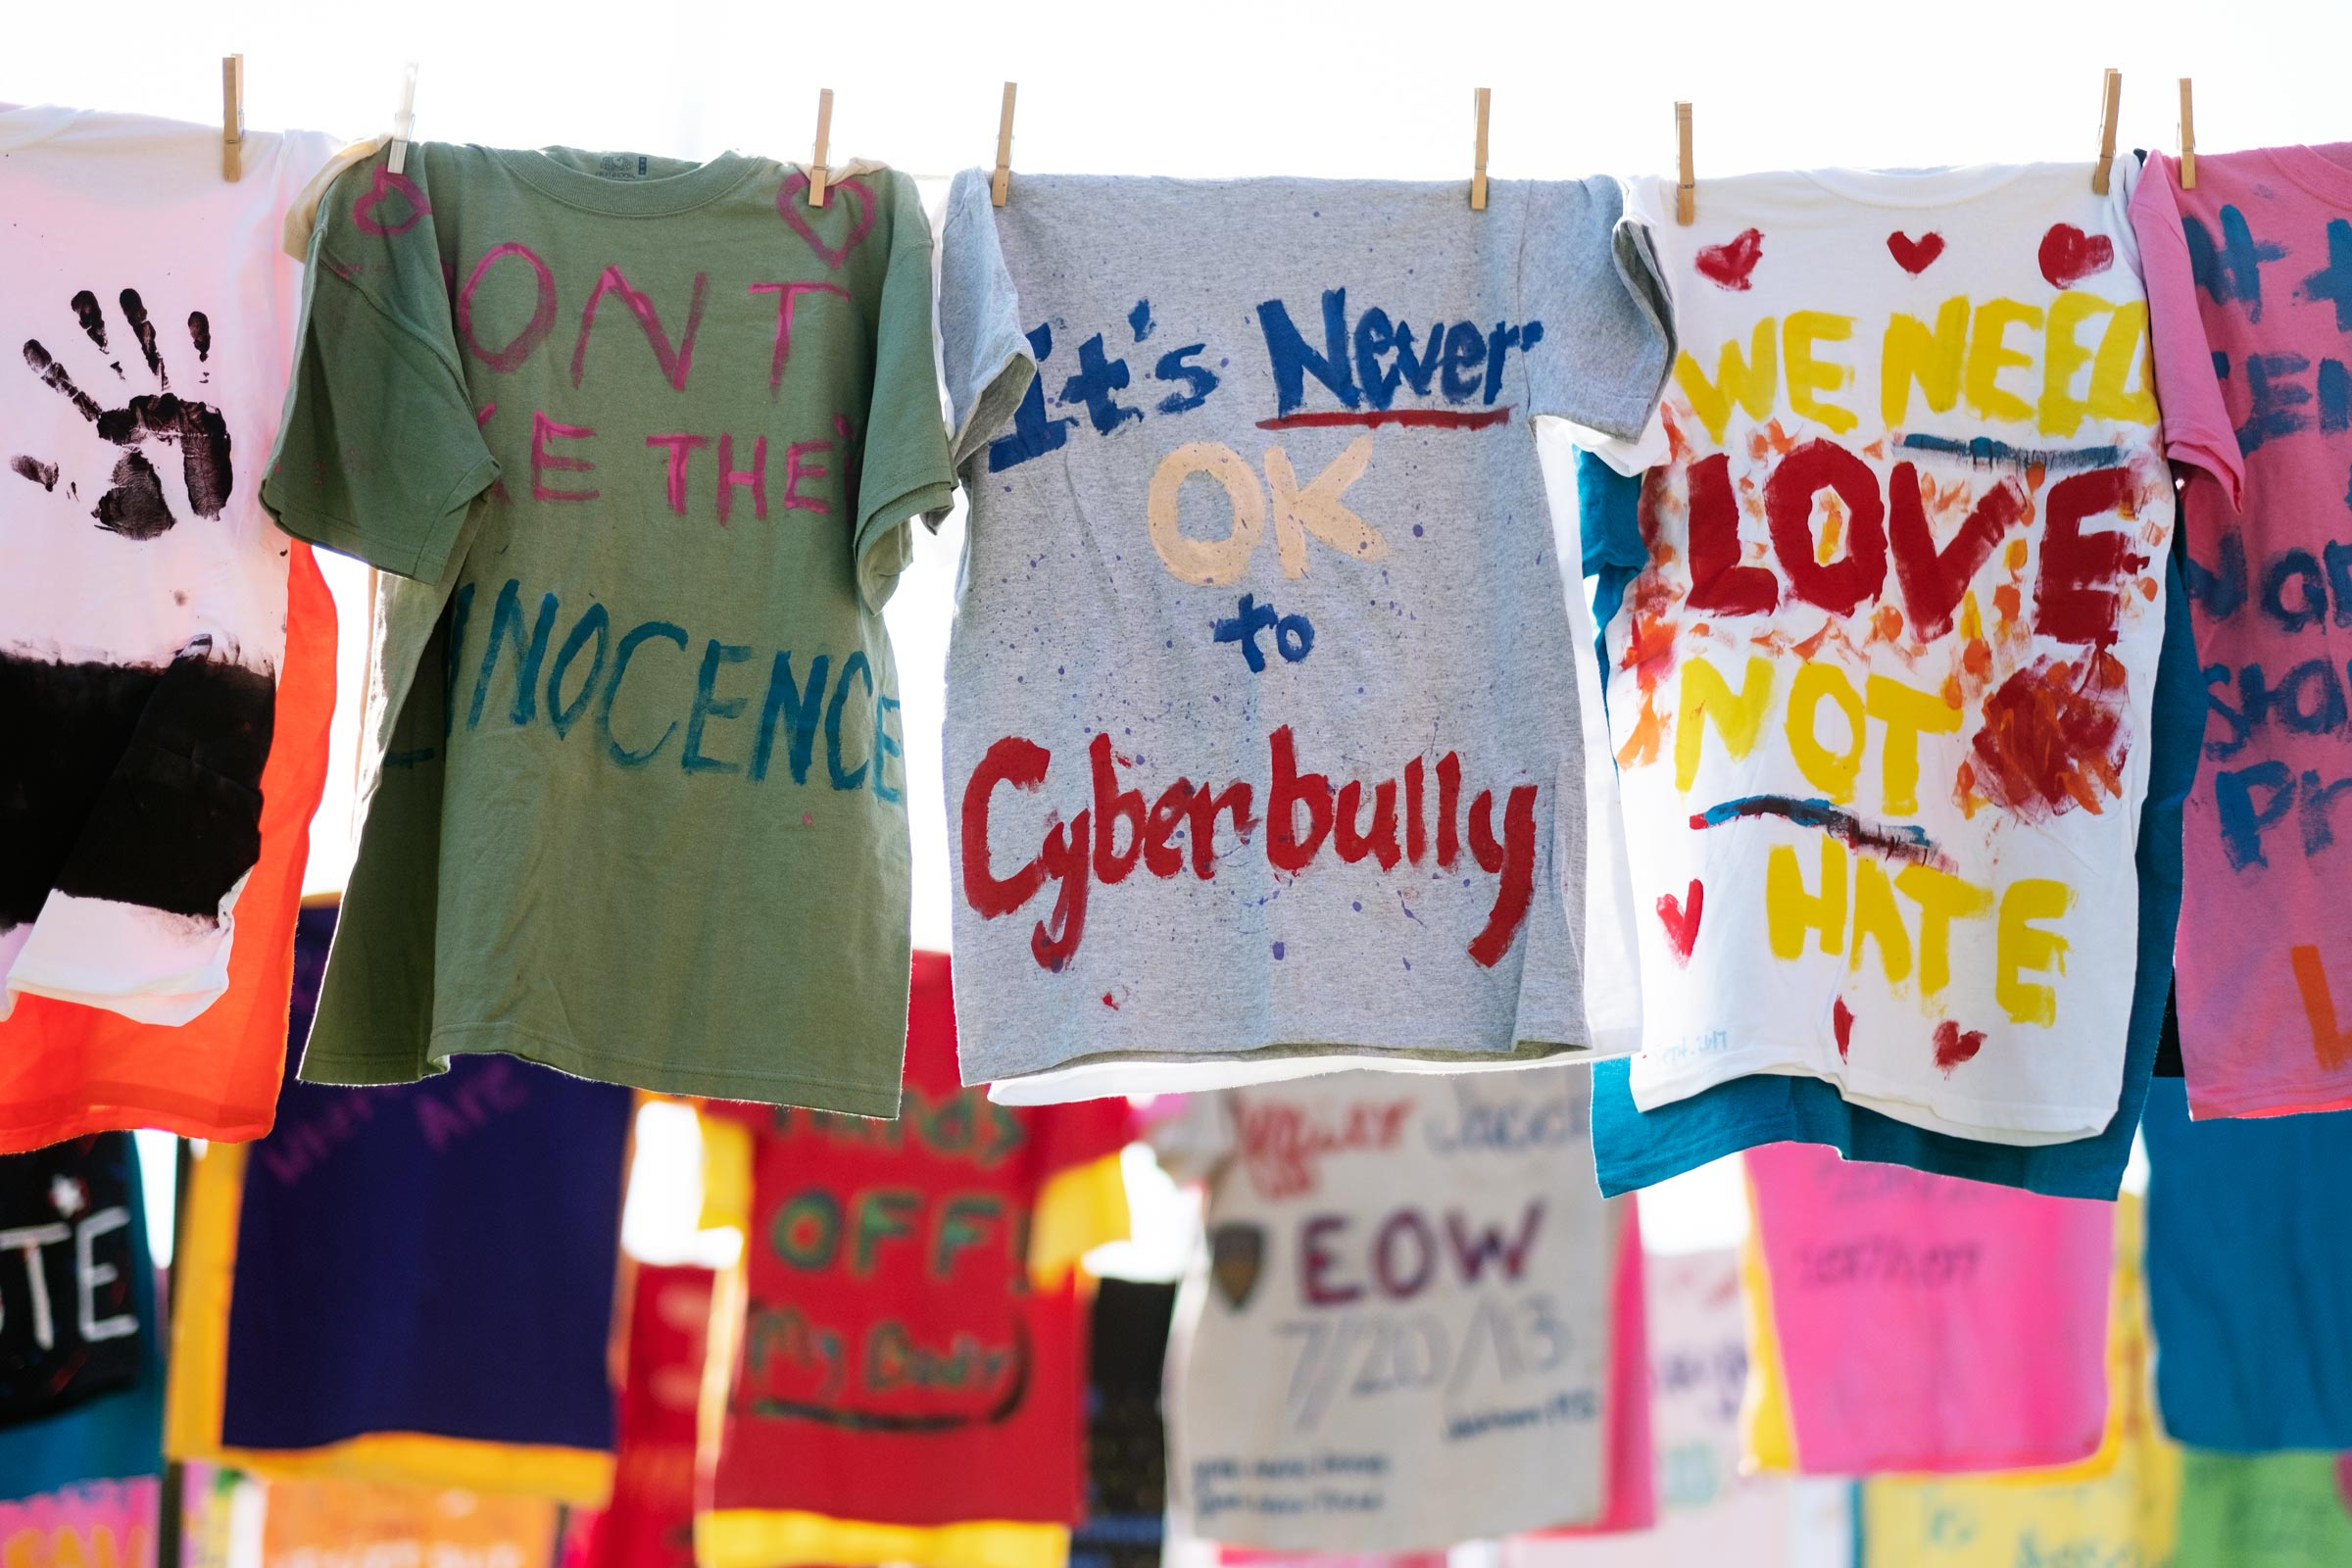 A colorful array of painted t-shirts hang by clothespins as part of the Clothesline Project.